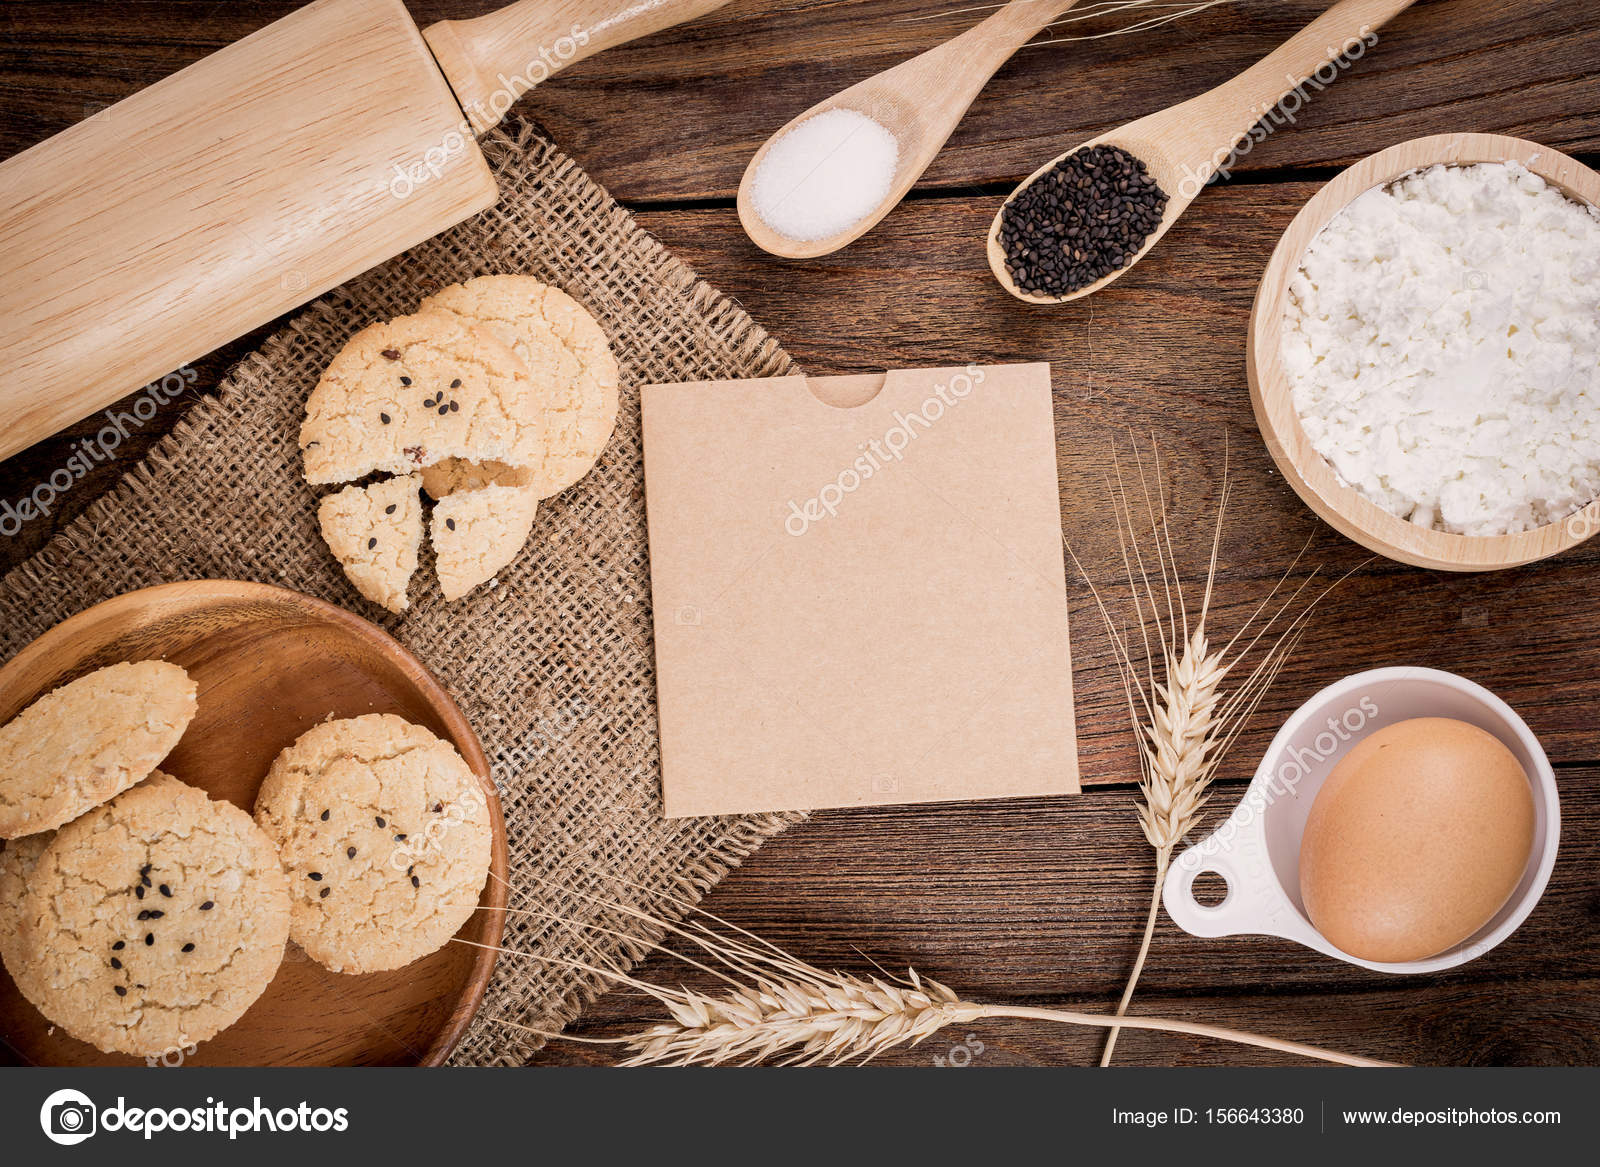 Beau Rural Vintage Wooden Kitchen Table With Old Blank Sheet Of Paper, Baking  Cookie Ingredients And